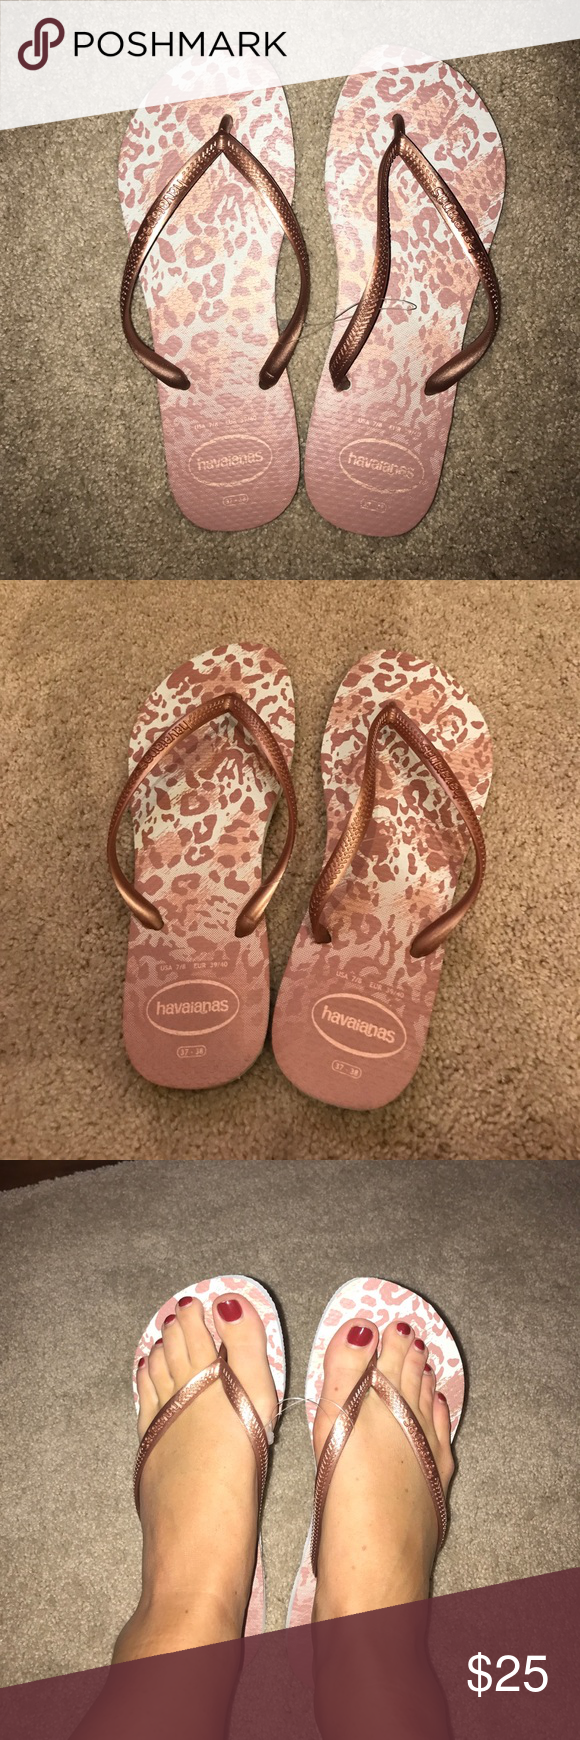 Rose gold cheetah havaianas Brand new never worn outside